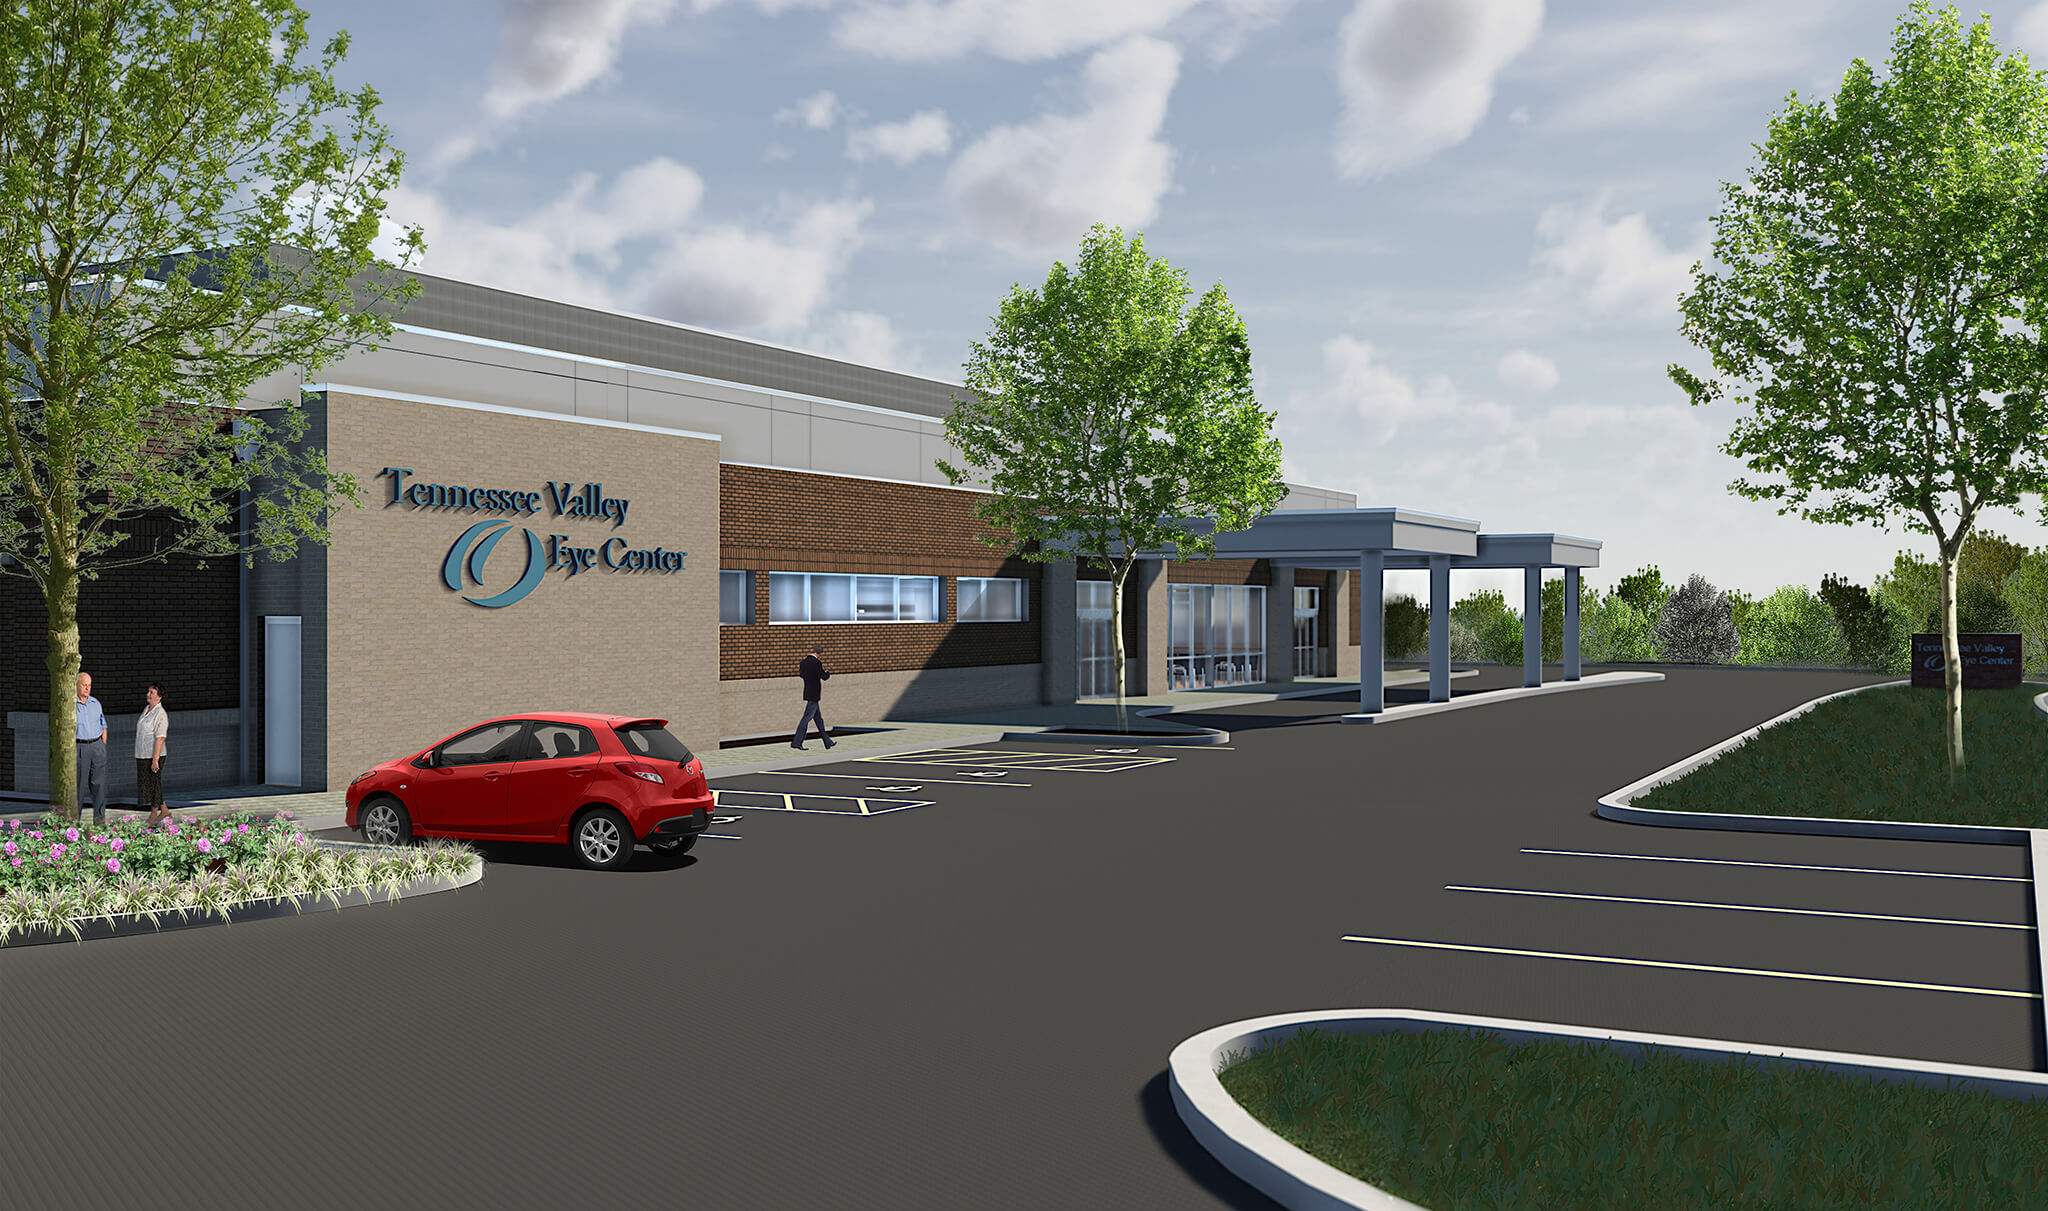 The New Tennessee Valley Eye Center